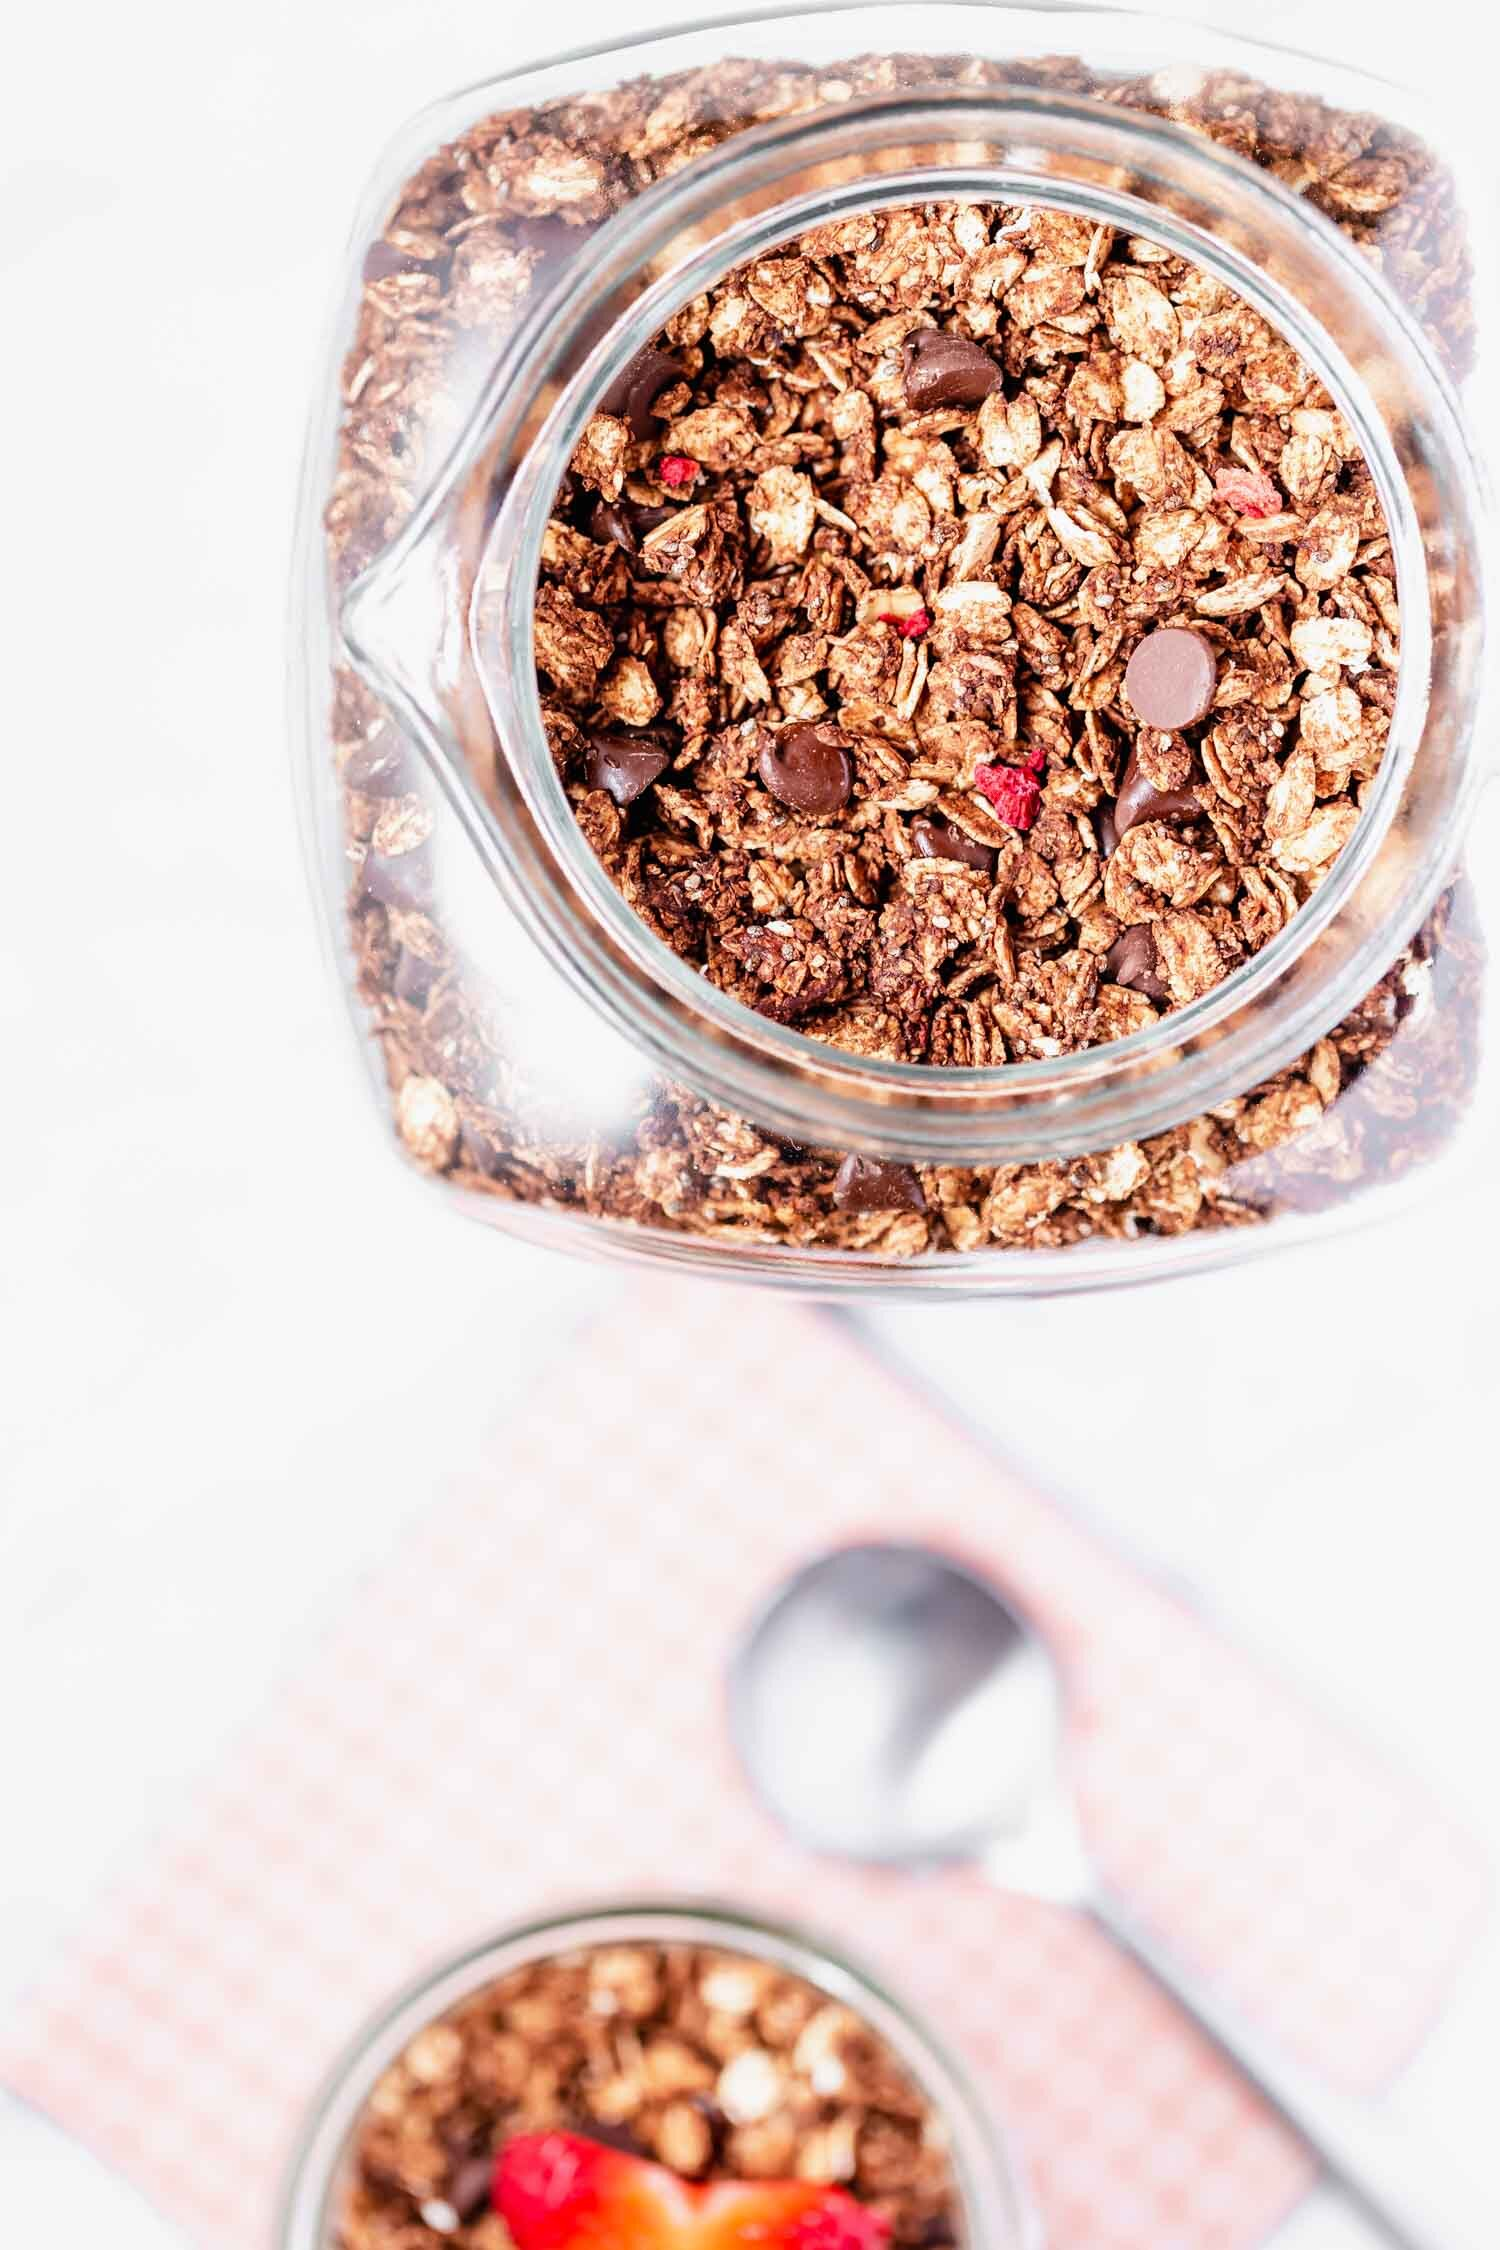 Chocolate and freeze-dried berries are the perfect combo in this crispy granola, inspired by store-bought granola. Vegan, gluten-free, oil-free, sugar-free (optional), easy, with minimal prep time, yet makes a big batch.  #granola #granolarecipe #vegangranola #oilfreevegan #sugarfree #vegangranolarecipe #veganbreakfast #quickbreakfast #quicksnack #vegansnack #breakfastideas #breakfastideashealthy #breakfastrecipes #glutenfreerecipes